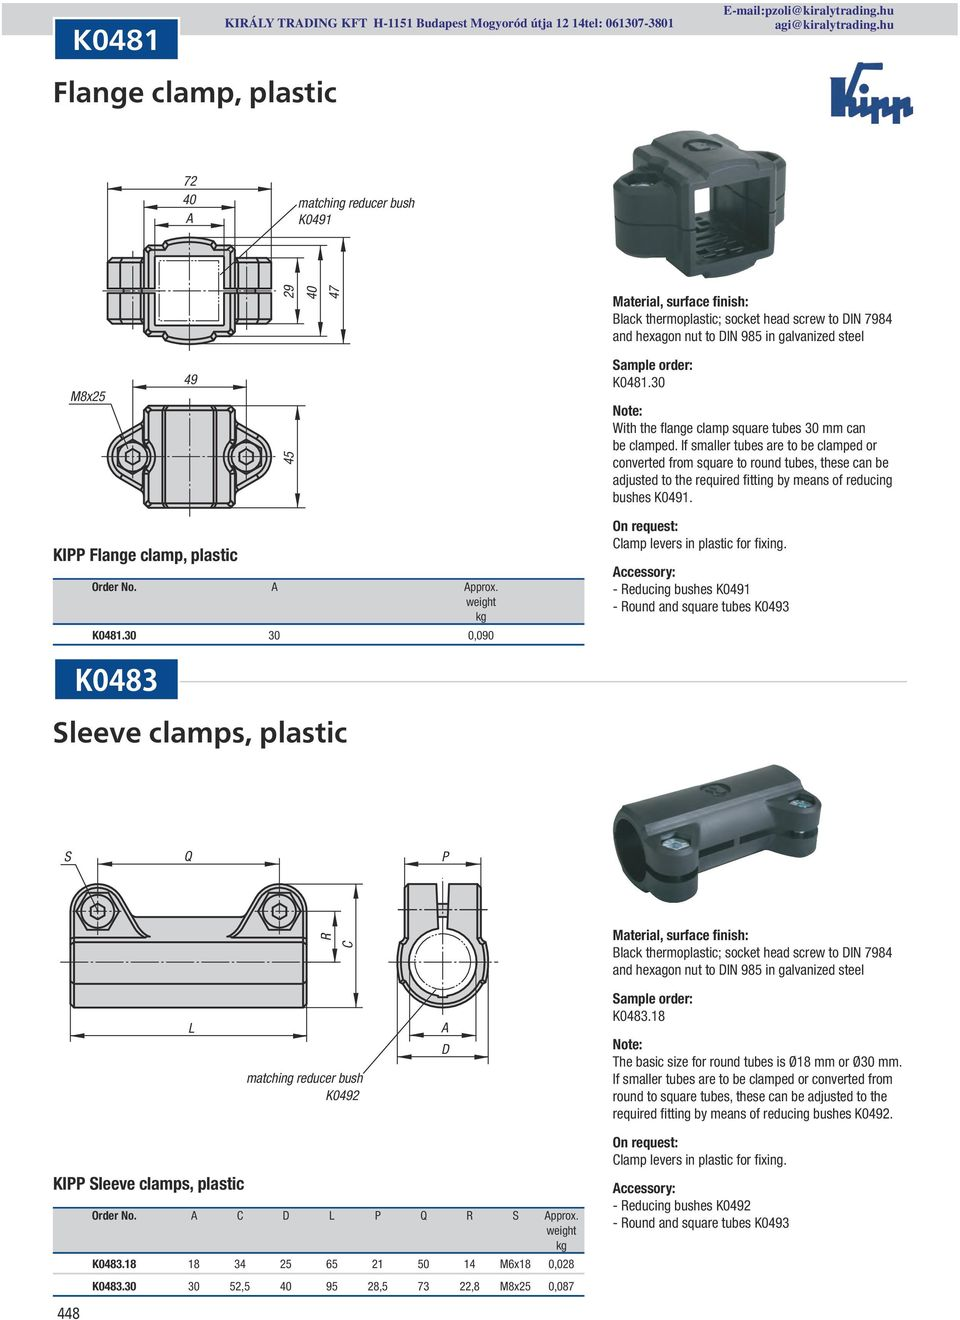 If smaller tubes are to be clamped or converted from square to round tubes, these can be adjusted to the required fitting by means of reducing bushes K0491. KIPP Flange clamp, plastic Order No. pprox.